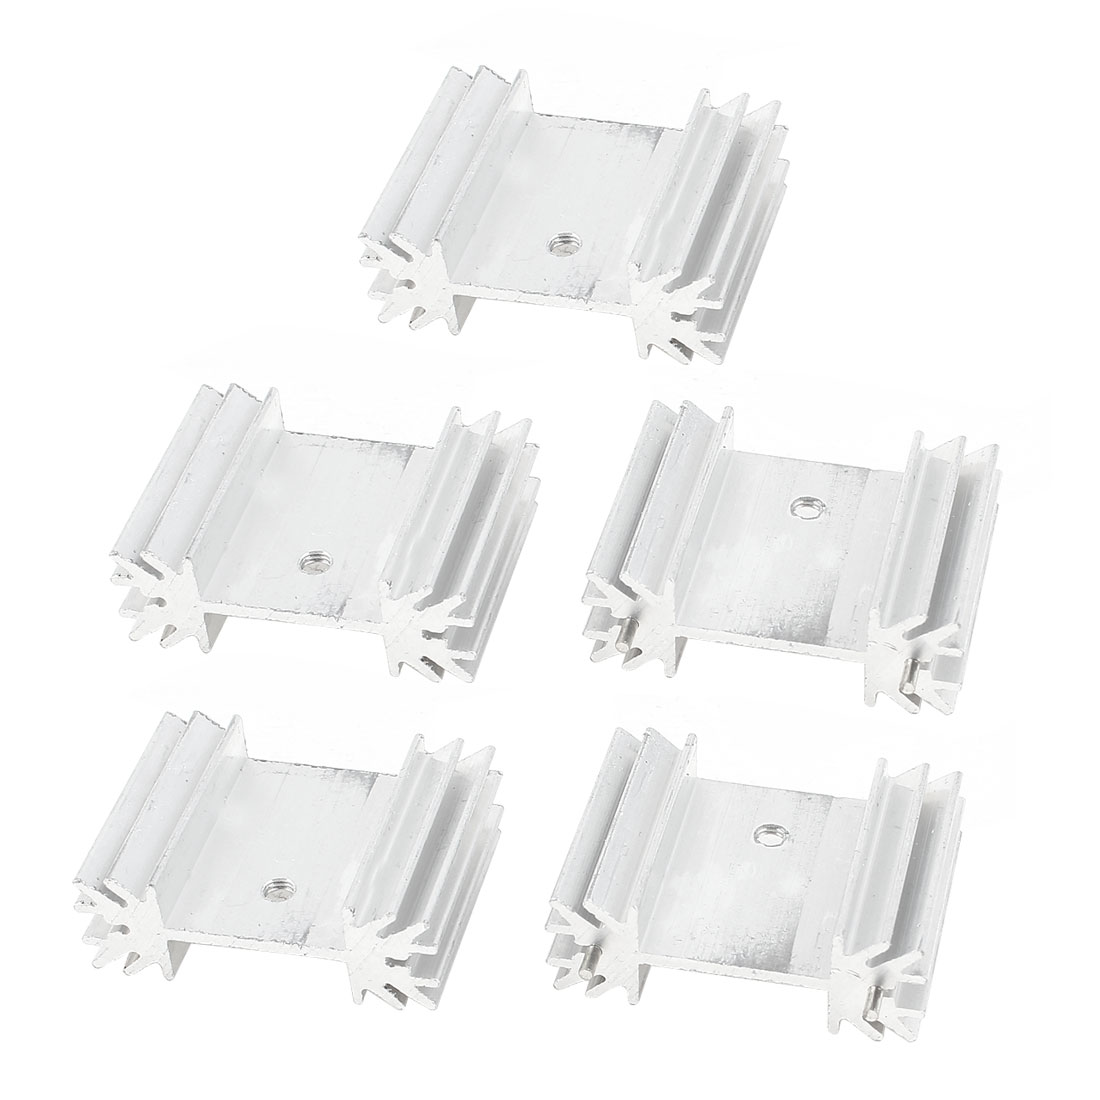 TO220 Power IC Aluminum Heat Sink Heatsink Silver Tone 25x34x12mm 5 Pcs